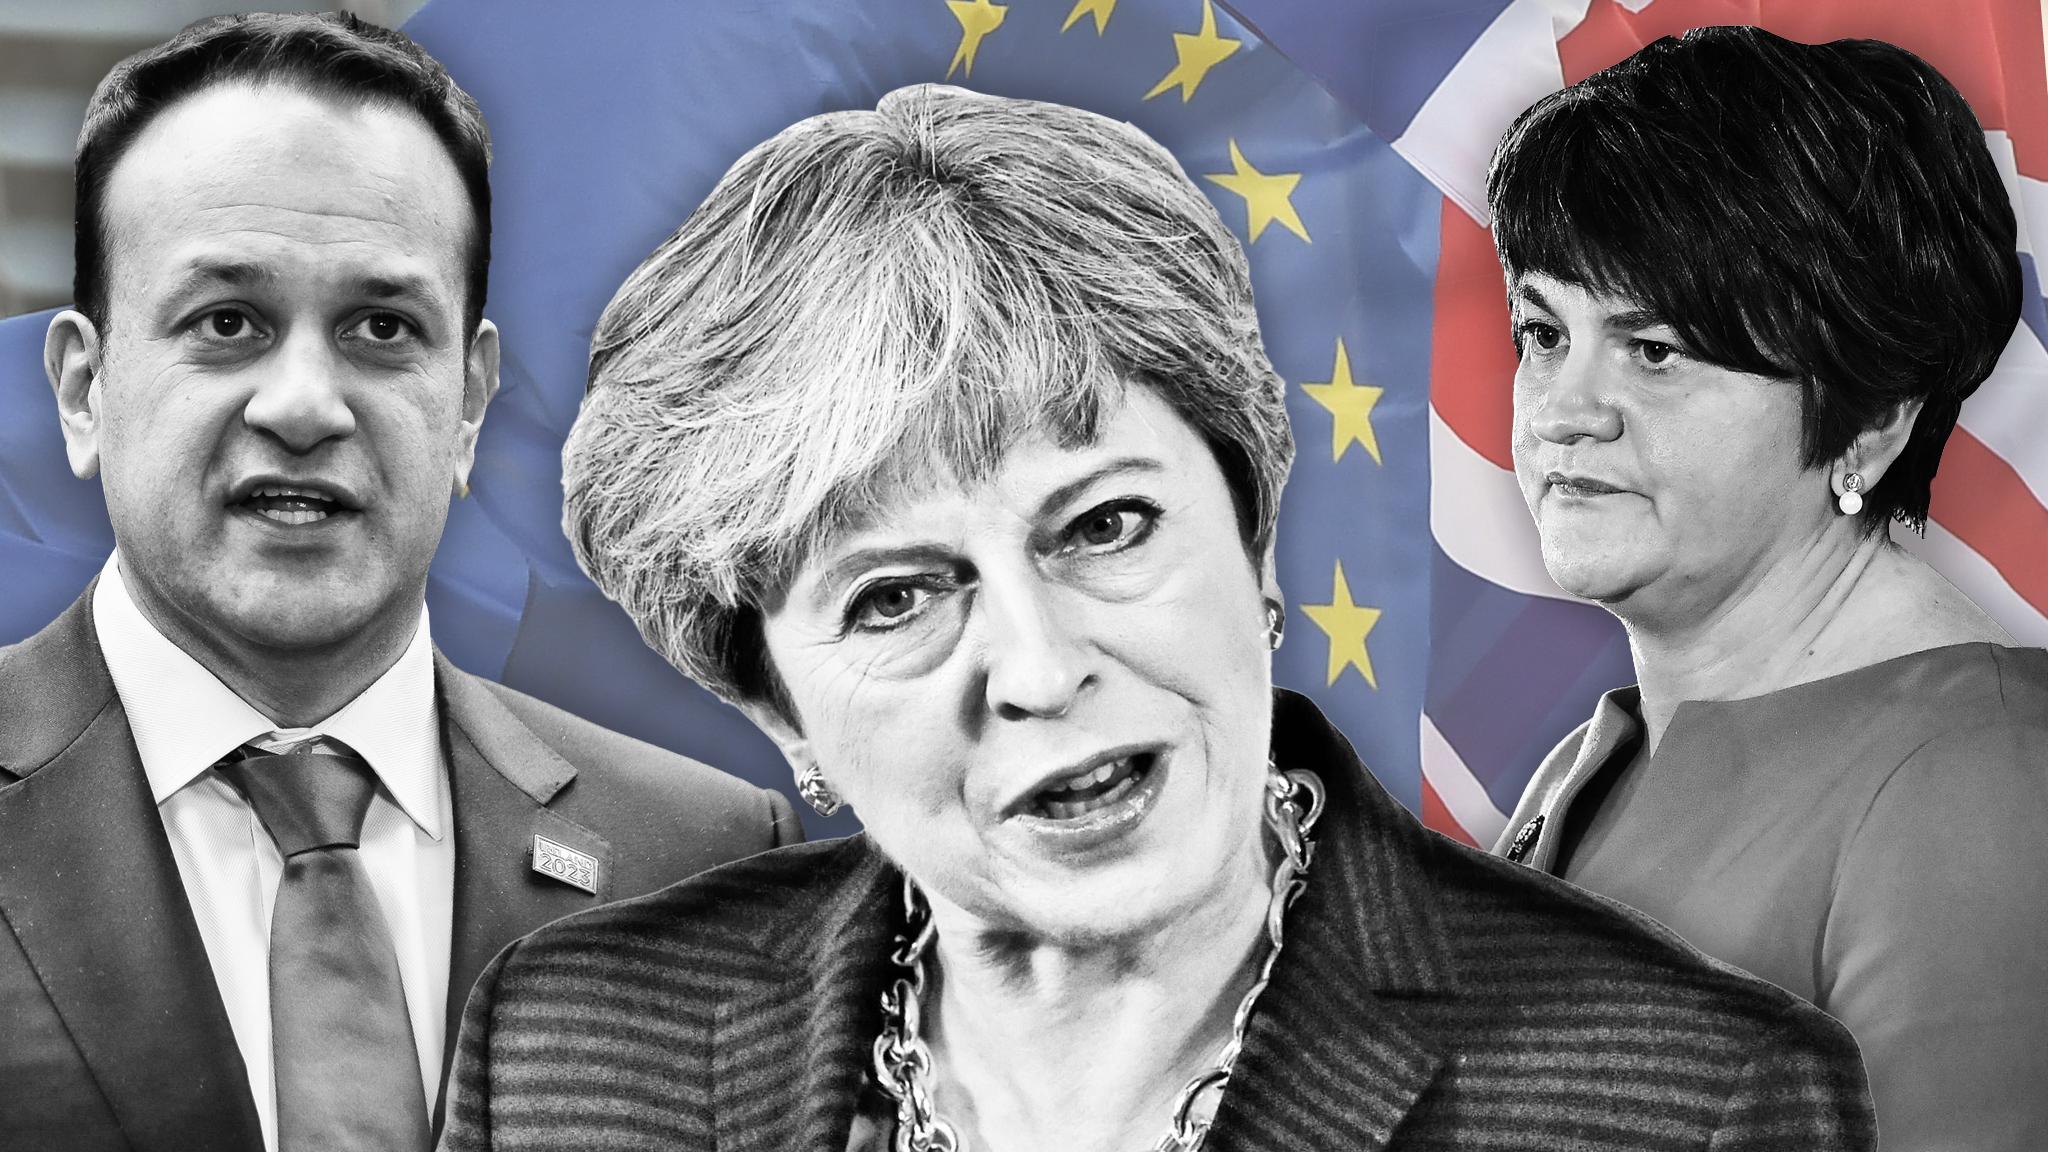 Brexit: Inside the UK's messy deal to secure an amicable divorce